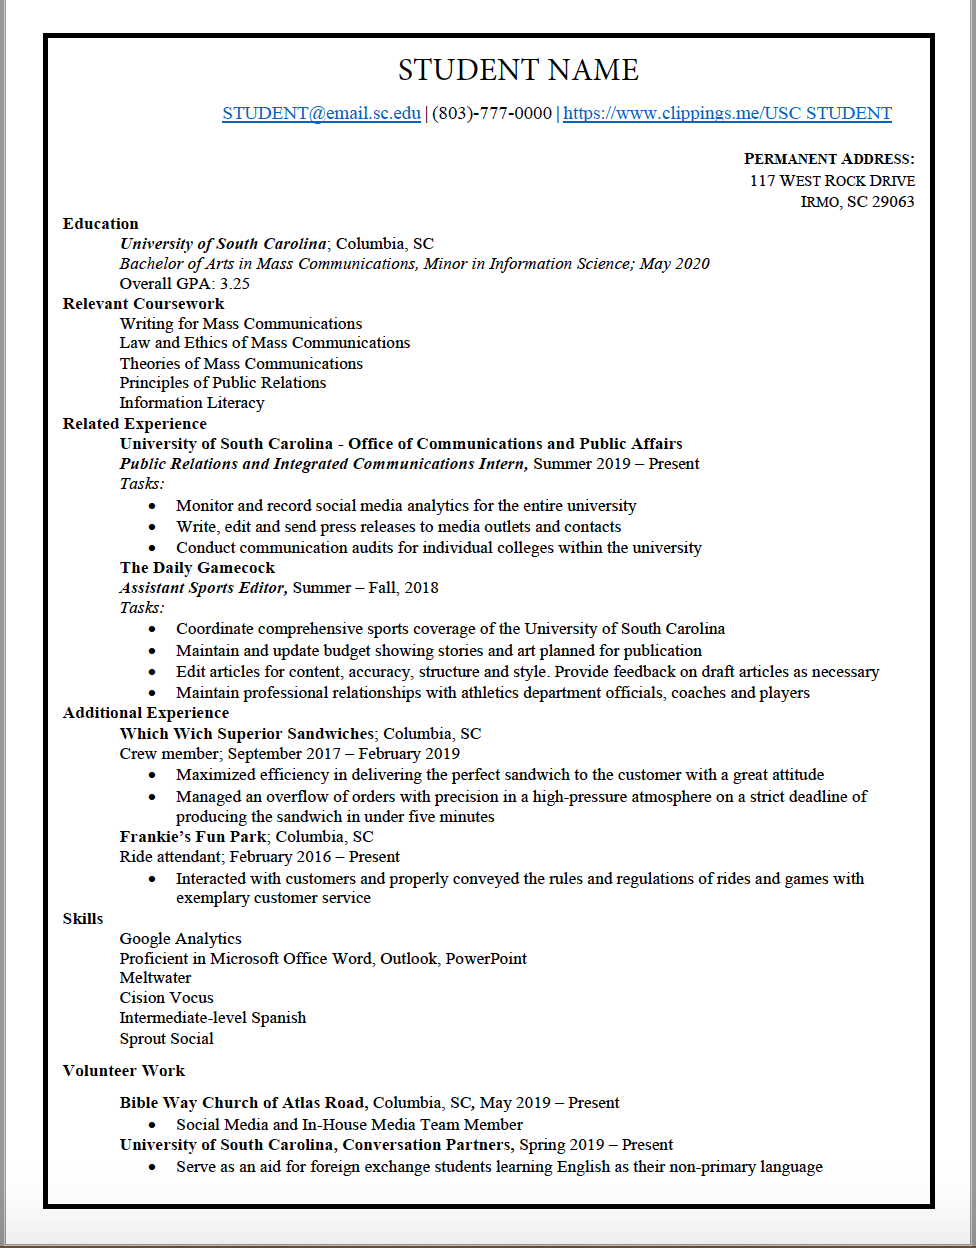 Professional resume services online columbia sc